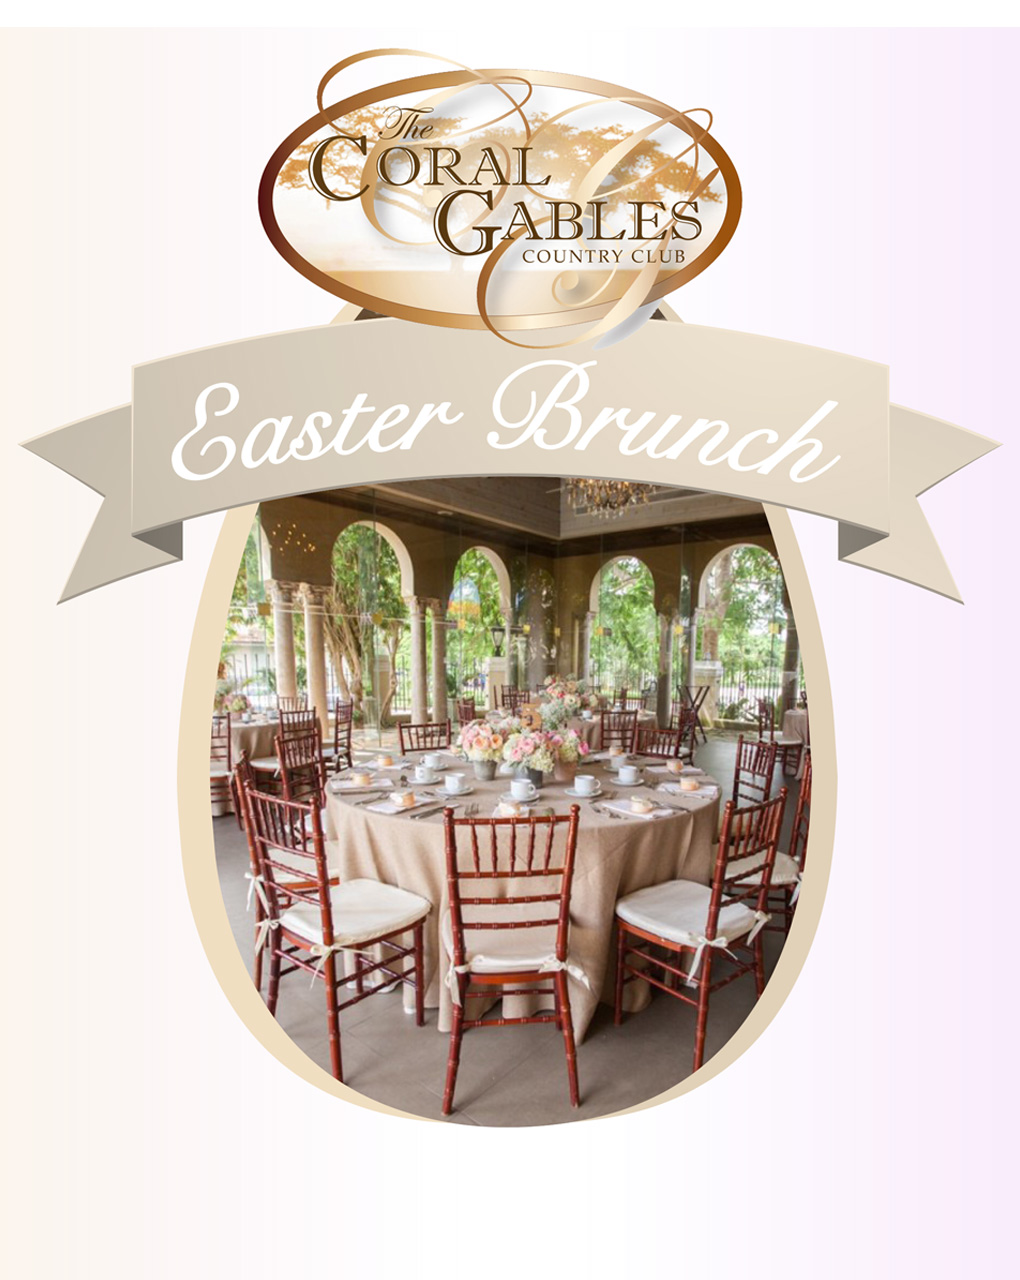 EASTER BRUNCH AT CORAL GABLES COUNTRY CLUB